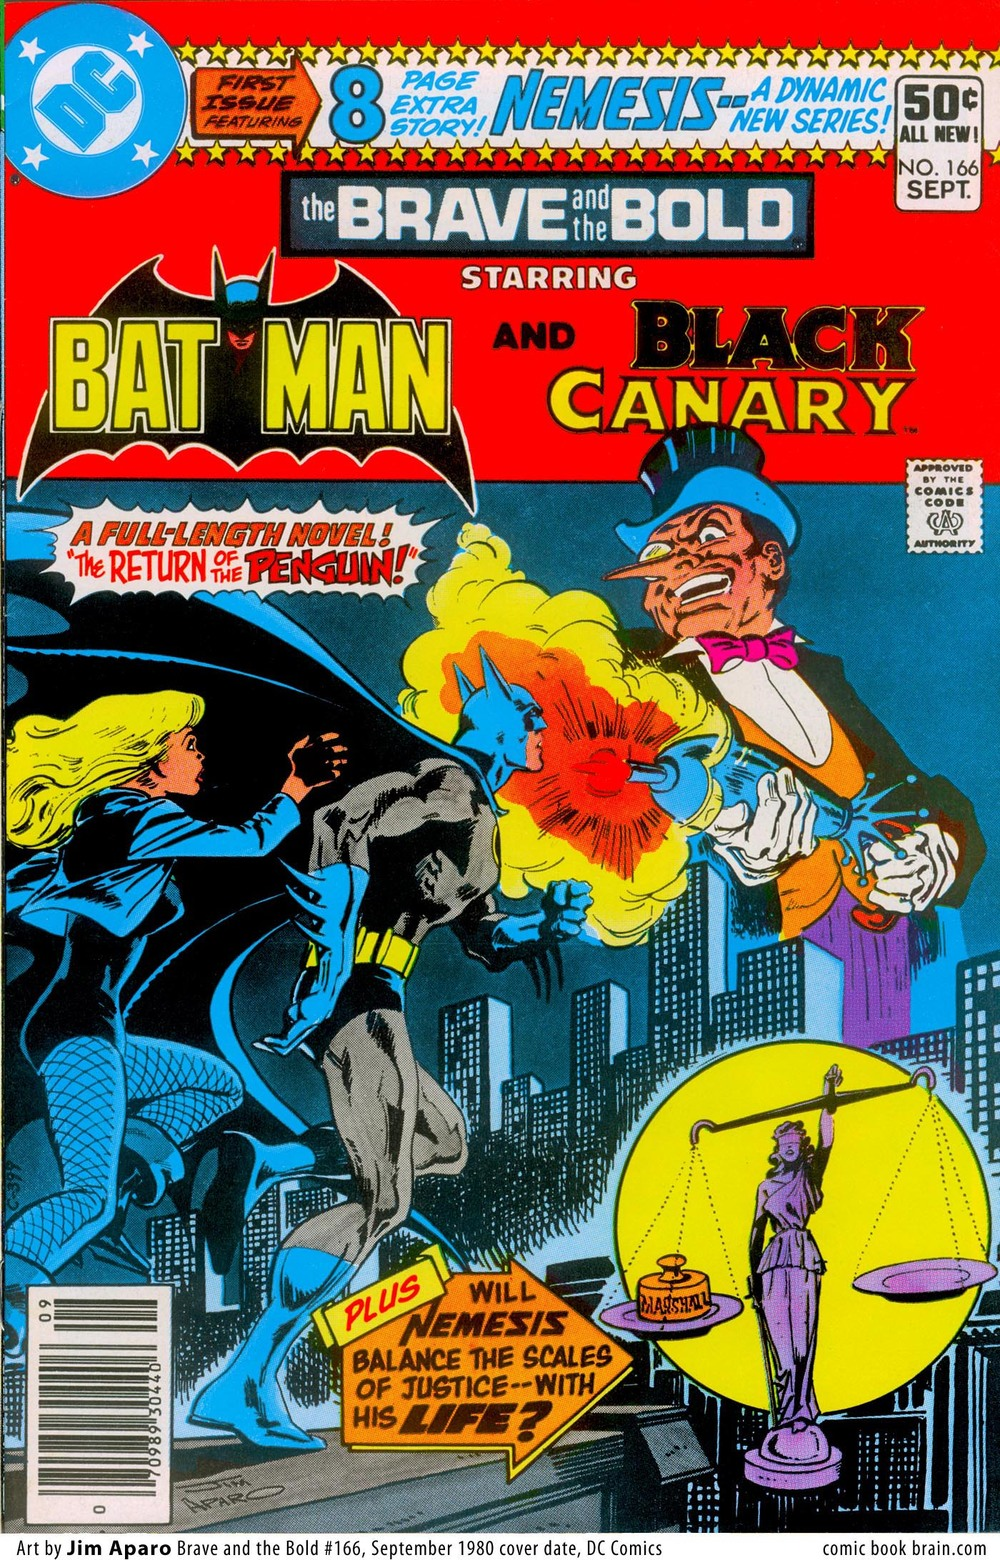 brave-and-the-bold-black-canary-issue-166.jpg